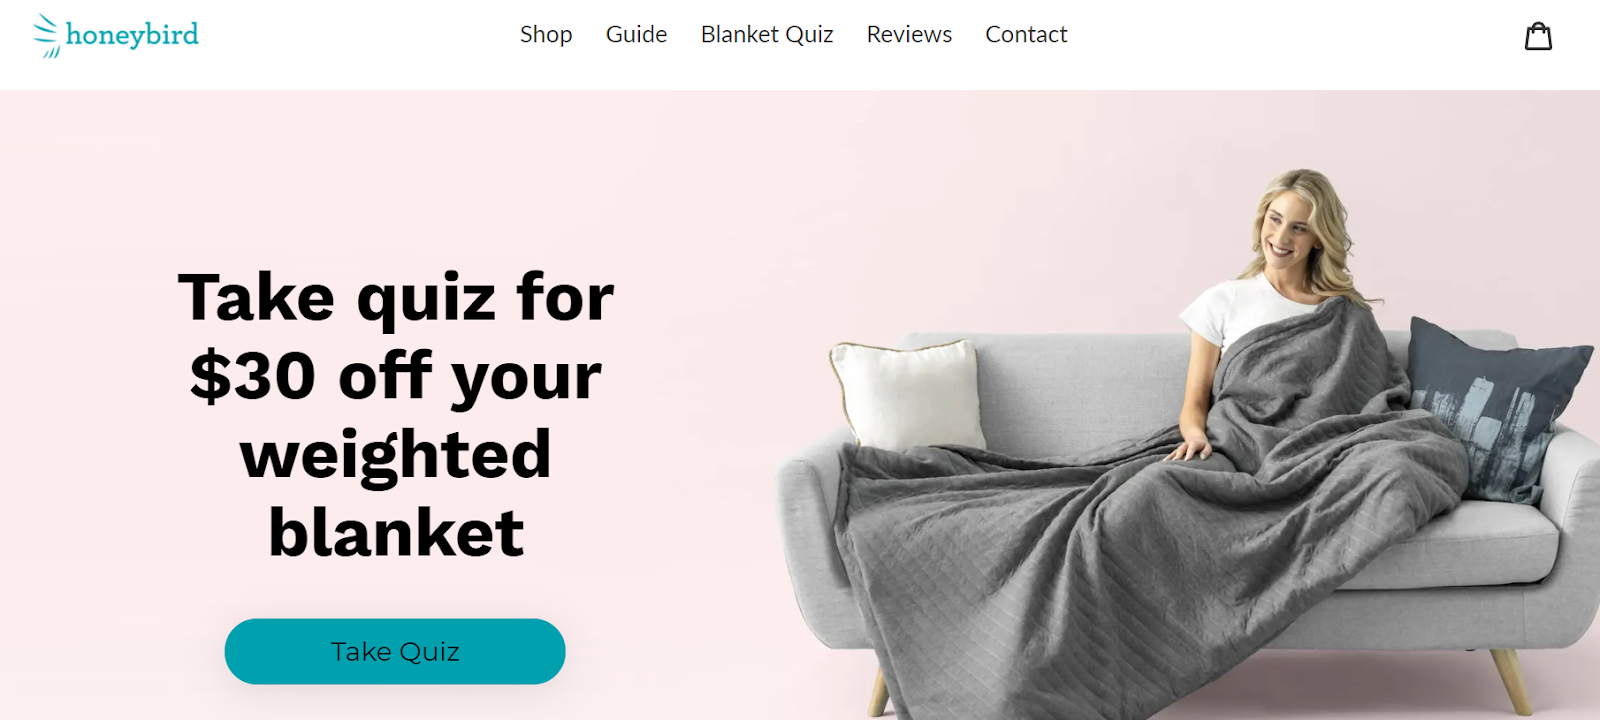 Honeybird CTA to take quiz to get $30 off weighted blanket